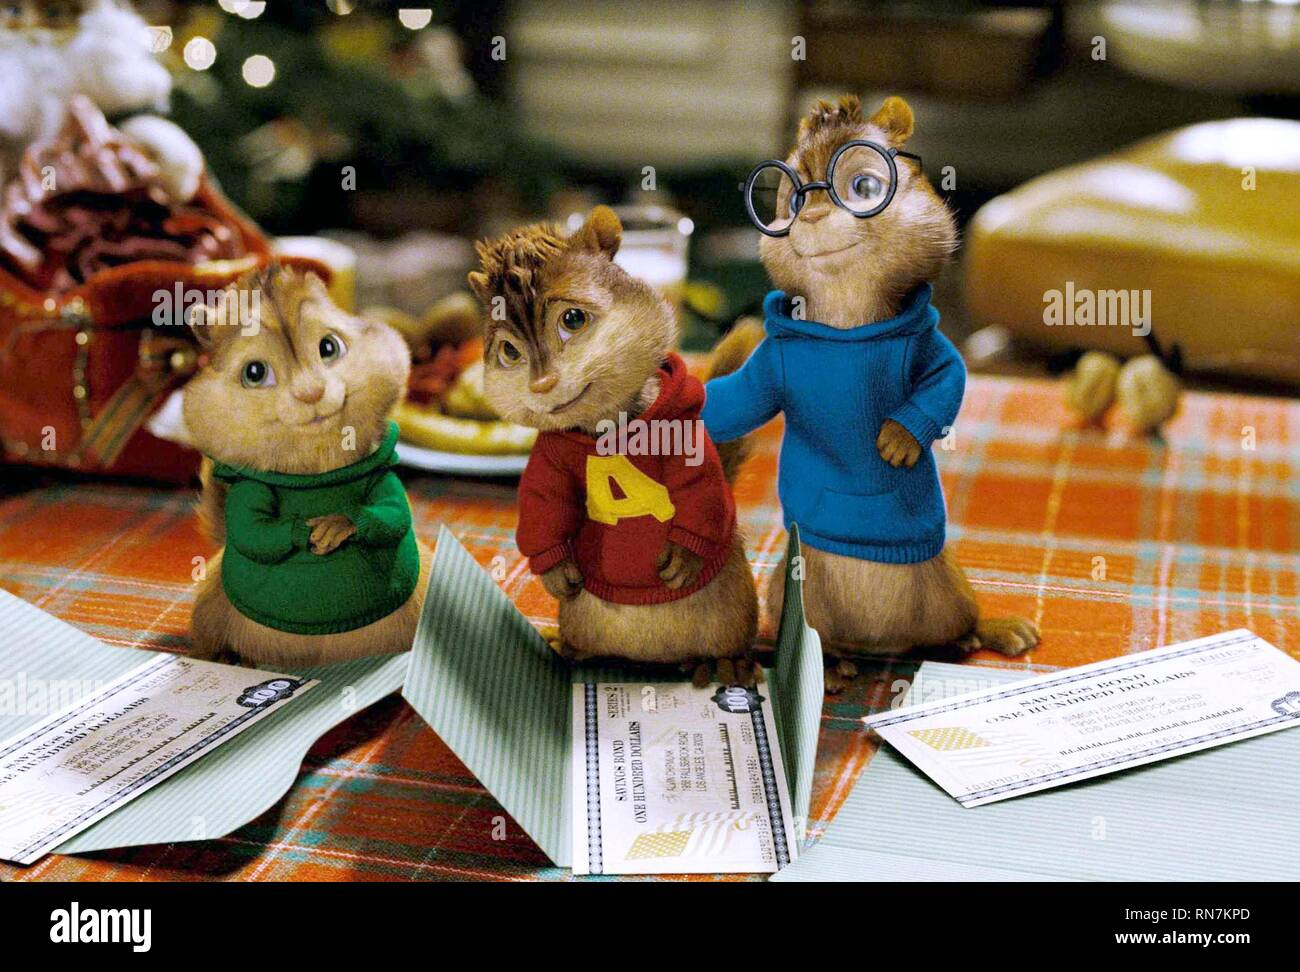 Alvin Simon Theodore Alvin Chipmunks High Resolution Stock Photography And Images Alamy